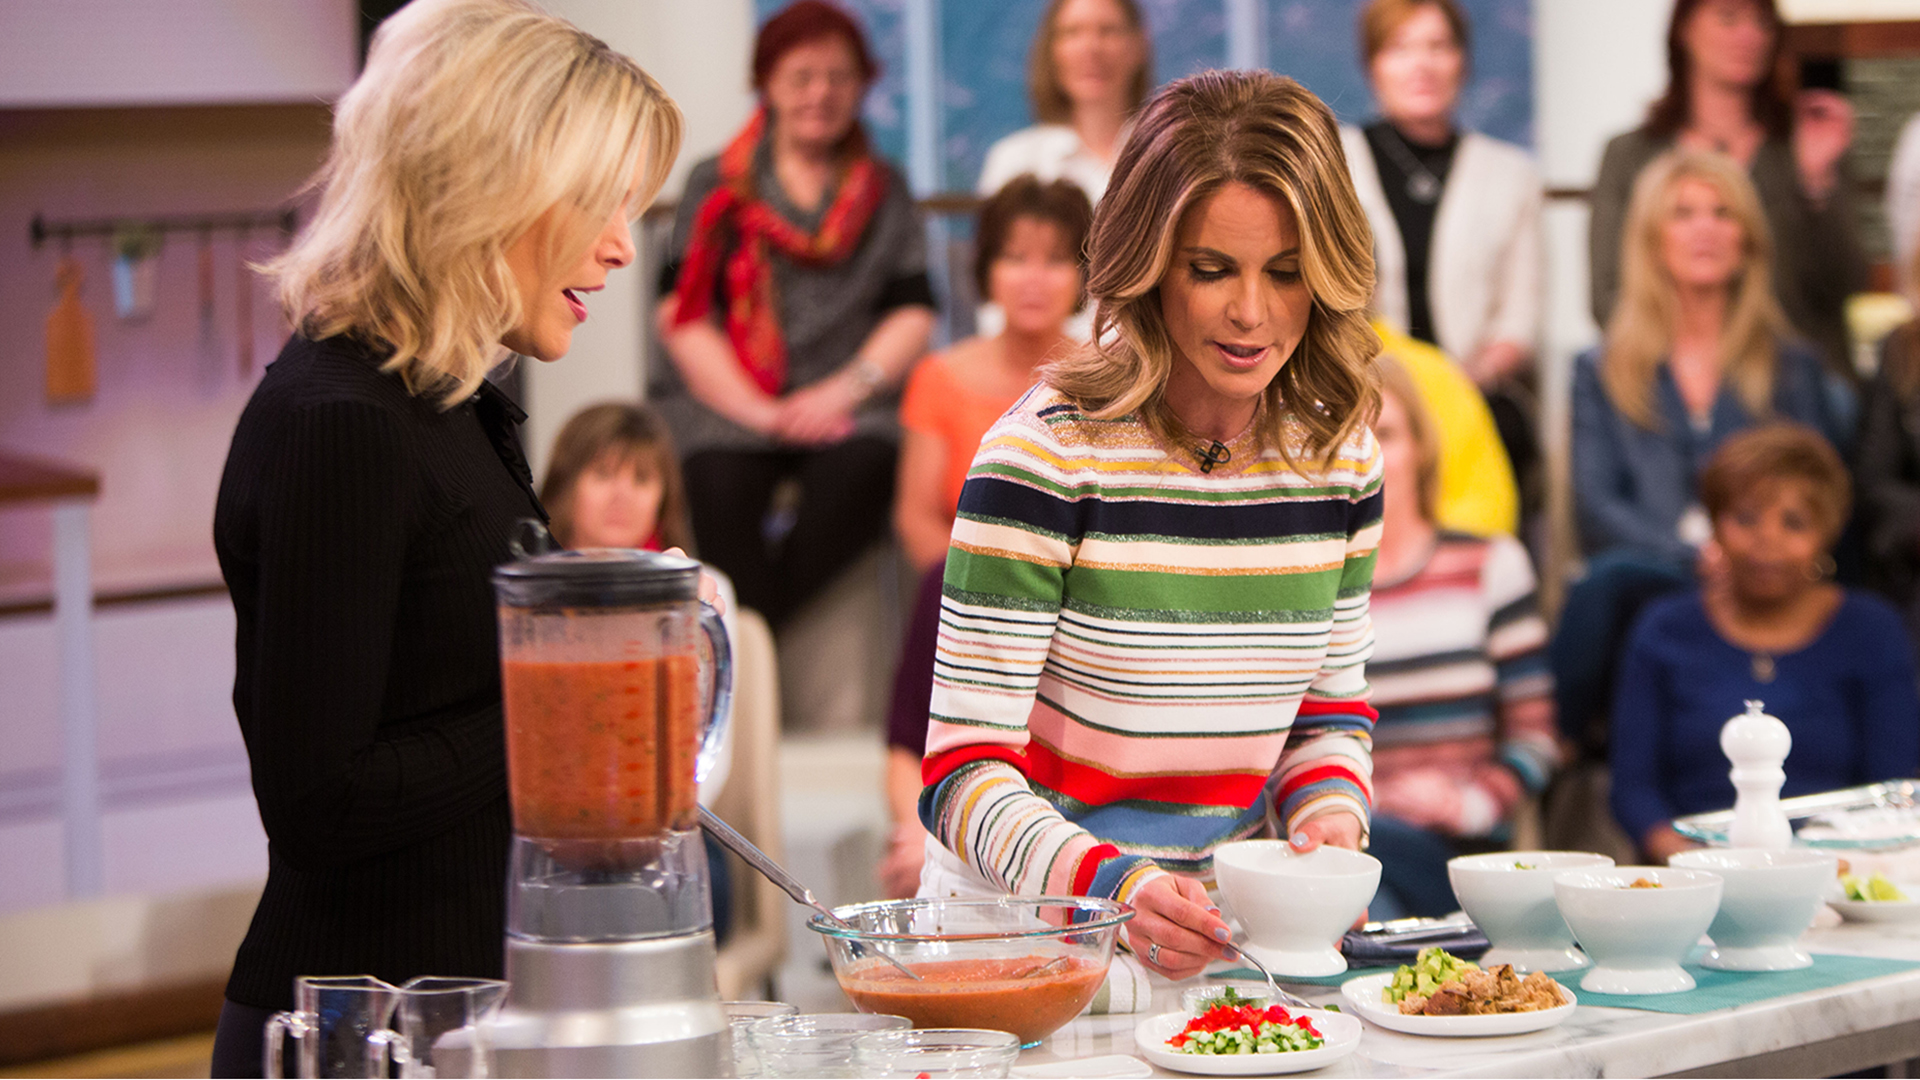 What Natalie Morales Has for Breakfast Every Morning advise